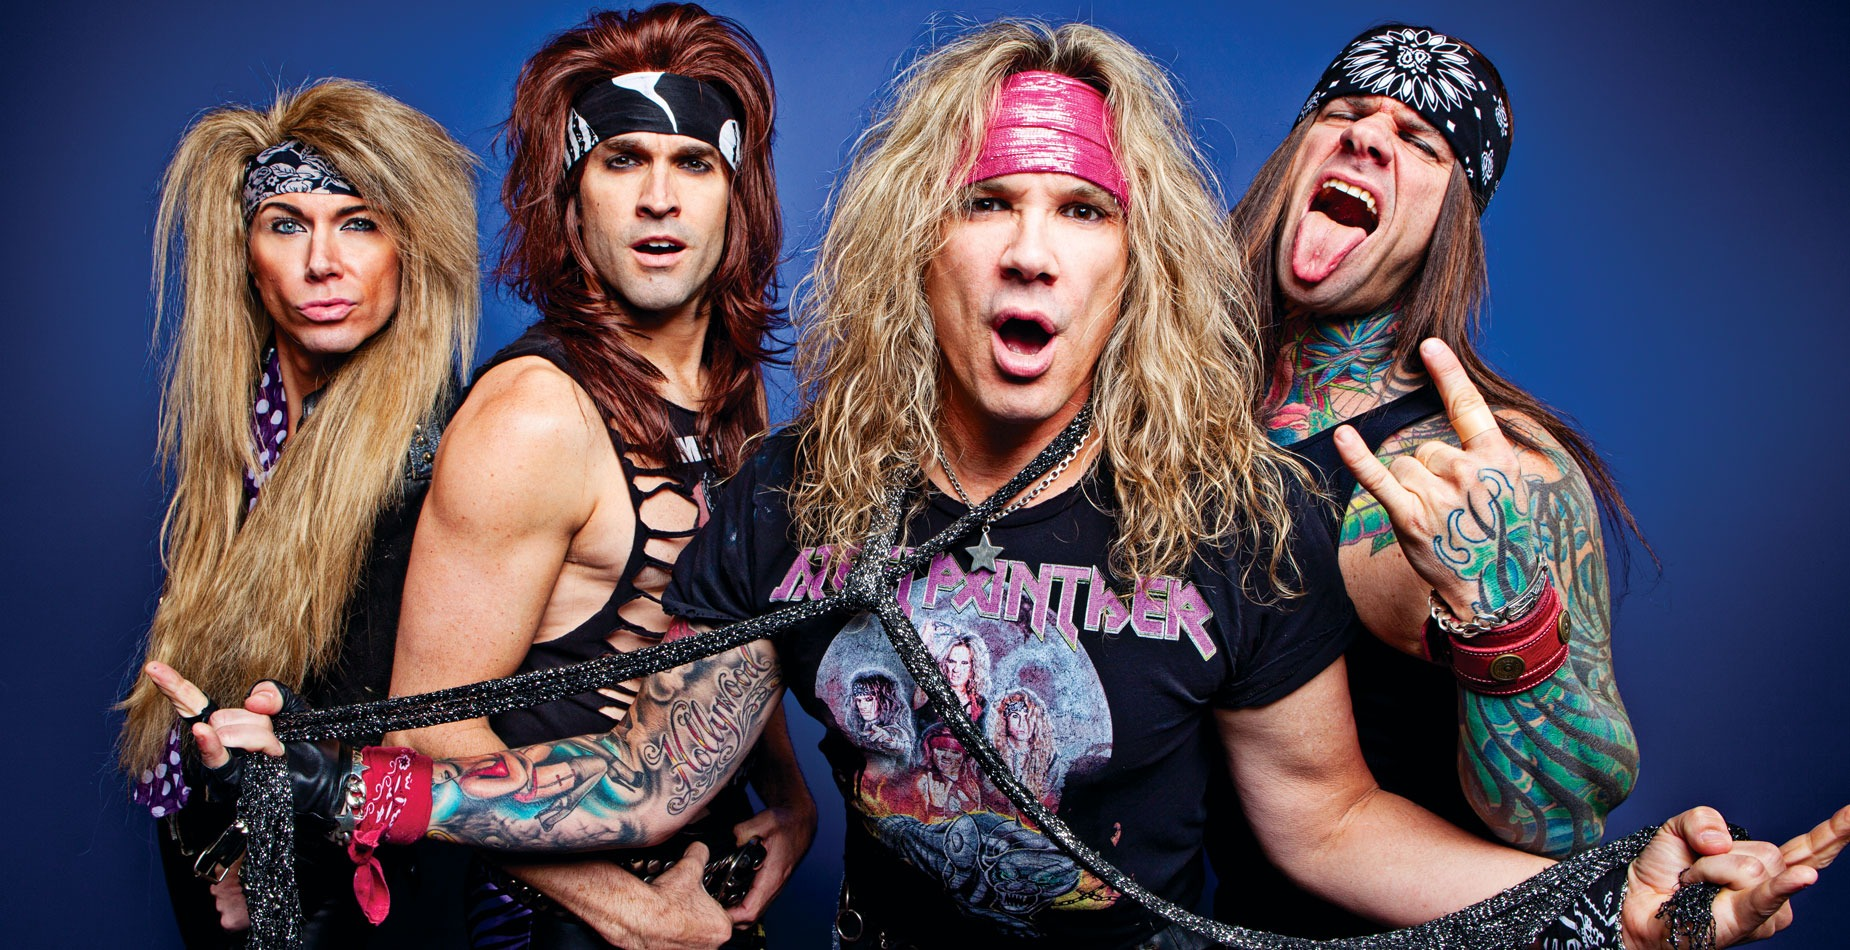 Chronique CD: All You Can Eat, Steel Panther